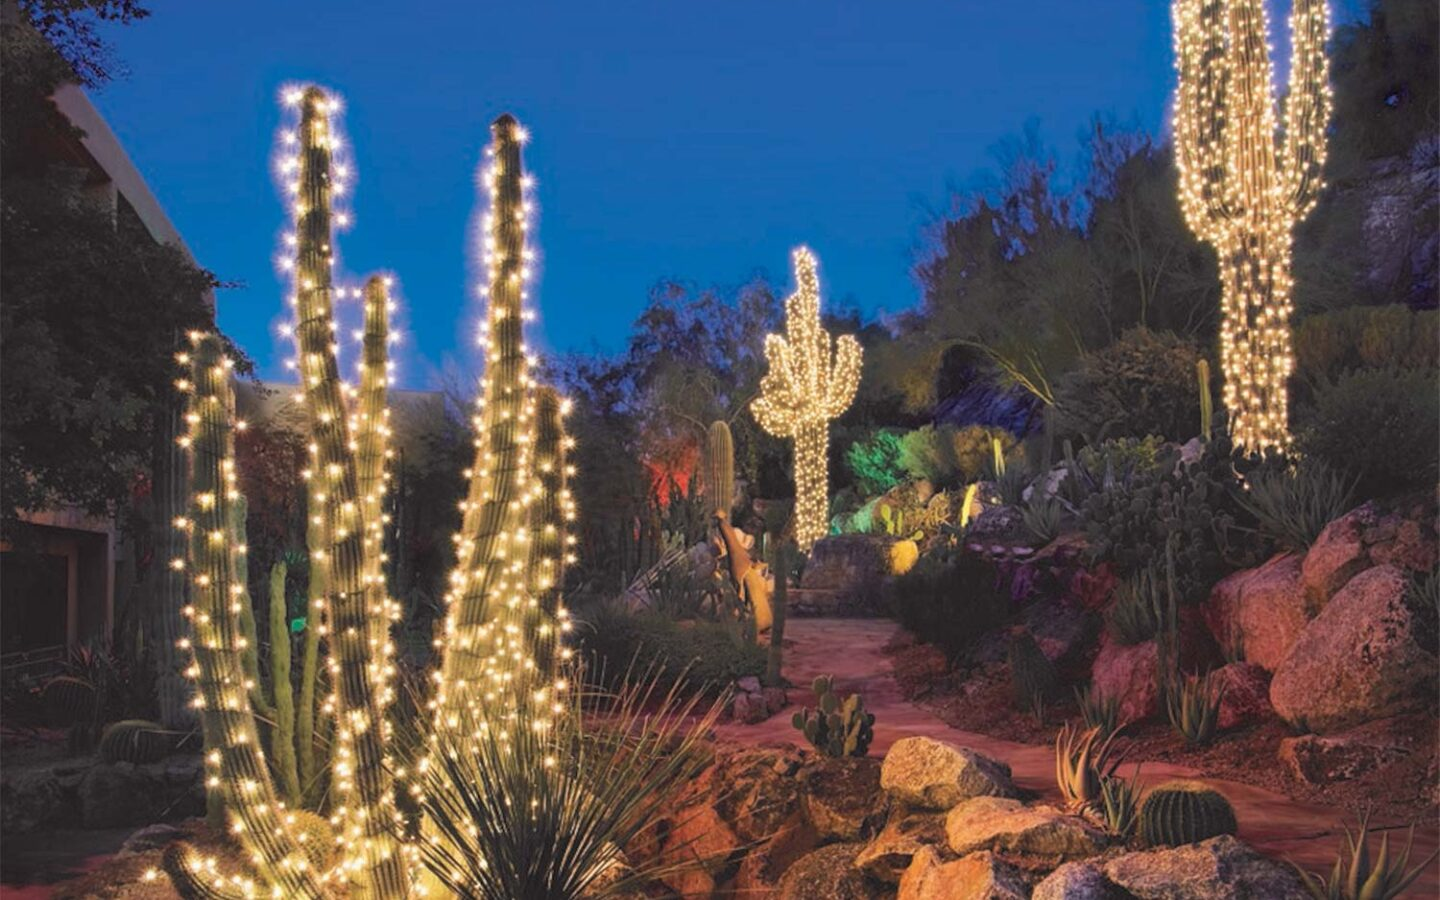 Resort cactus garden lit up for the holidays with tall cacti covered in string lights